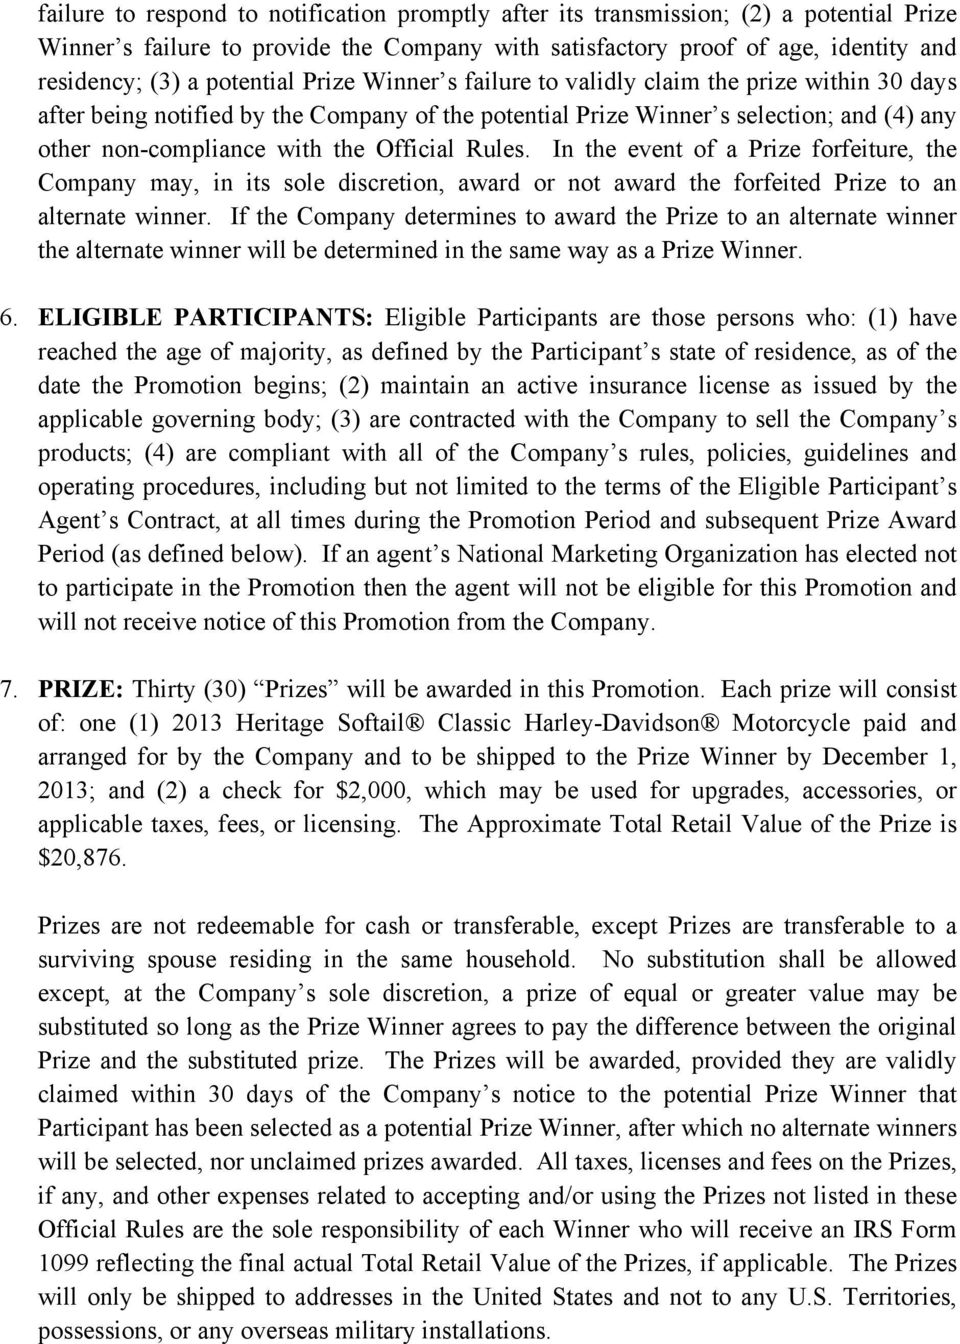 Official Rules. In the event of a Prize forfeiture, the Company may, in its sole discretion, award or not award the forfeited Prize to an alternate winner.